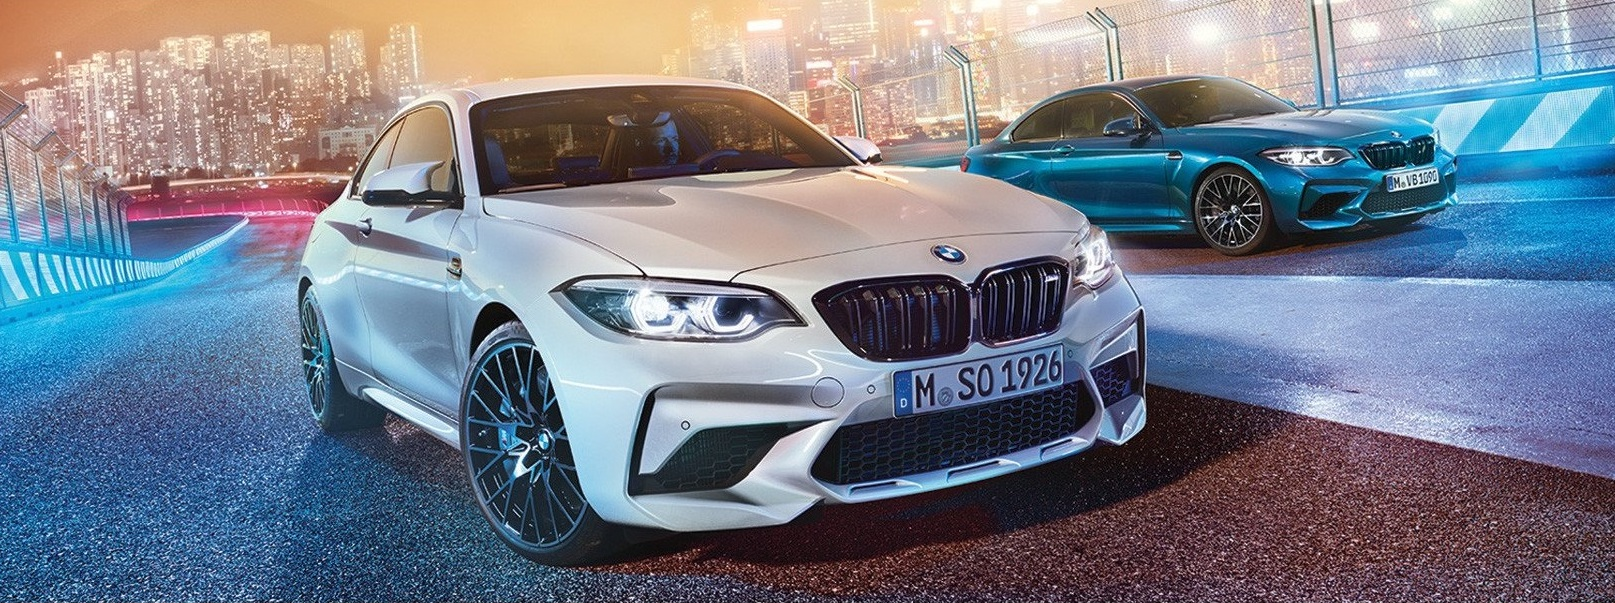 Name:  BMWBLOG-LEAKED-BMW-M2-Competition-51.jpeg Views: 74881 Size:  511.8 KB